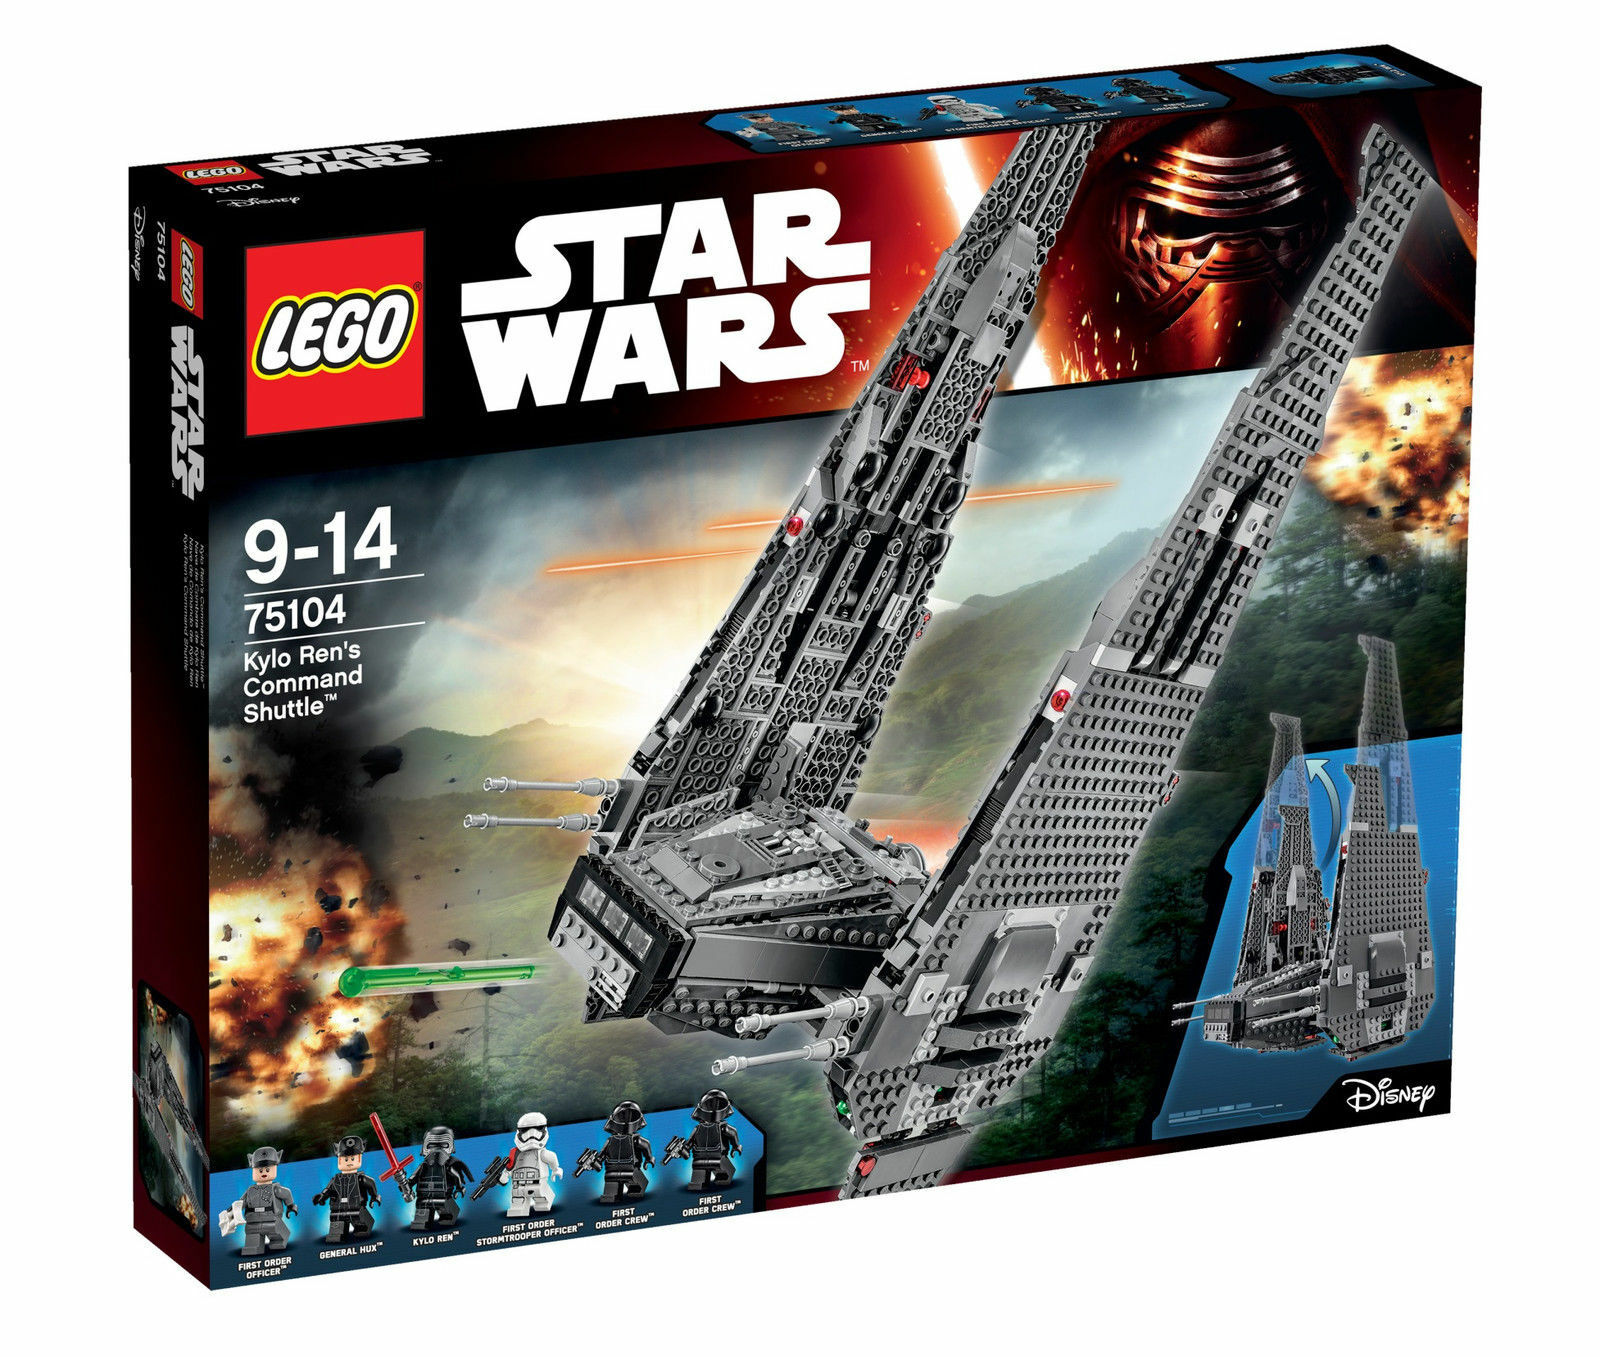 NIB LEGO Star Wars Kylo Ren's Command Shuttle 75104 NEW SEALED